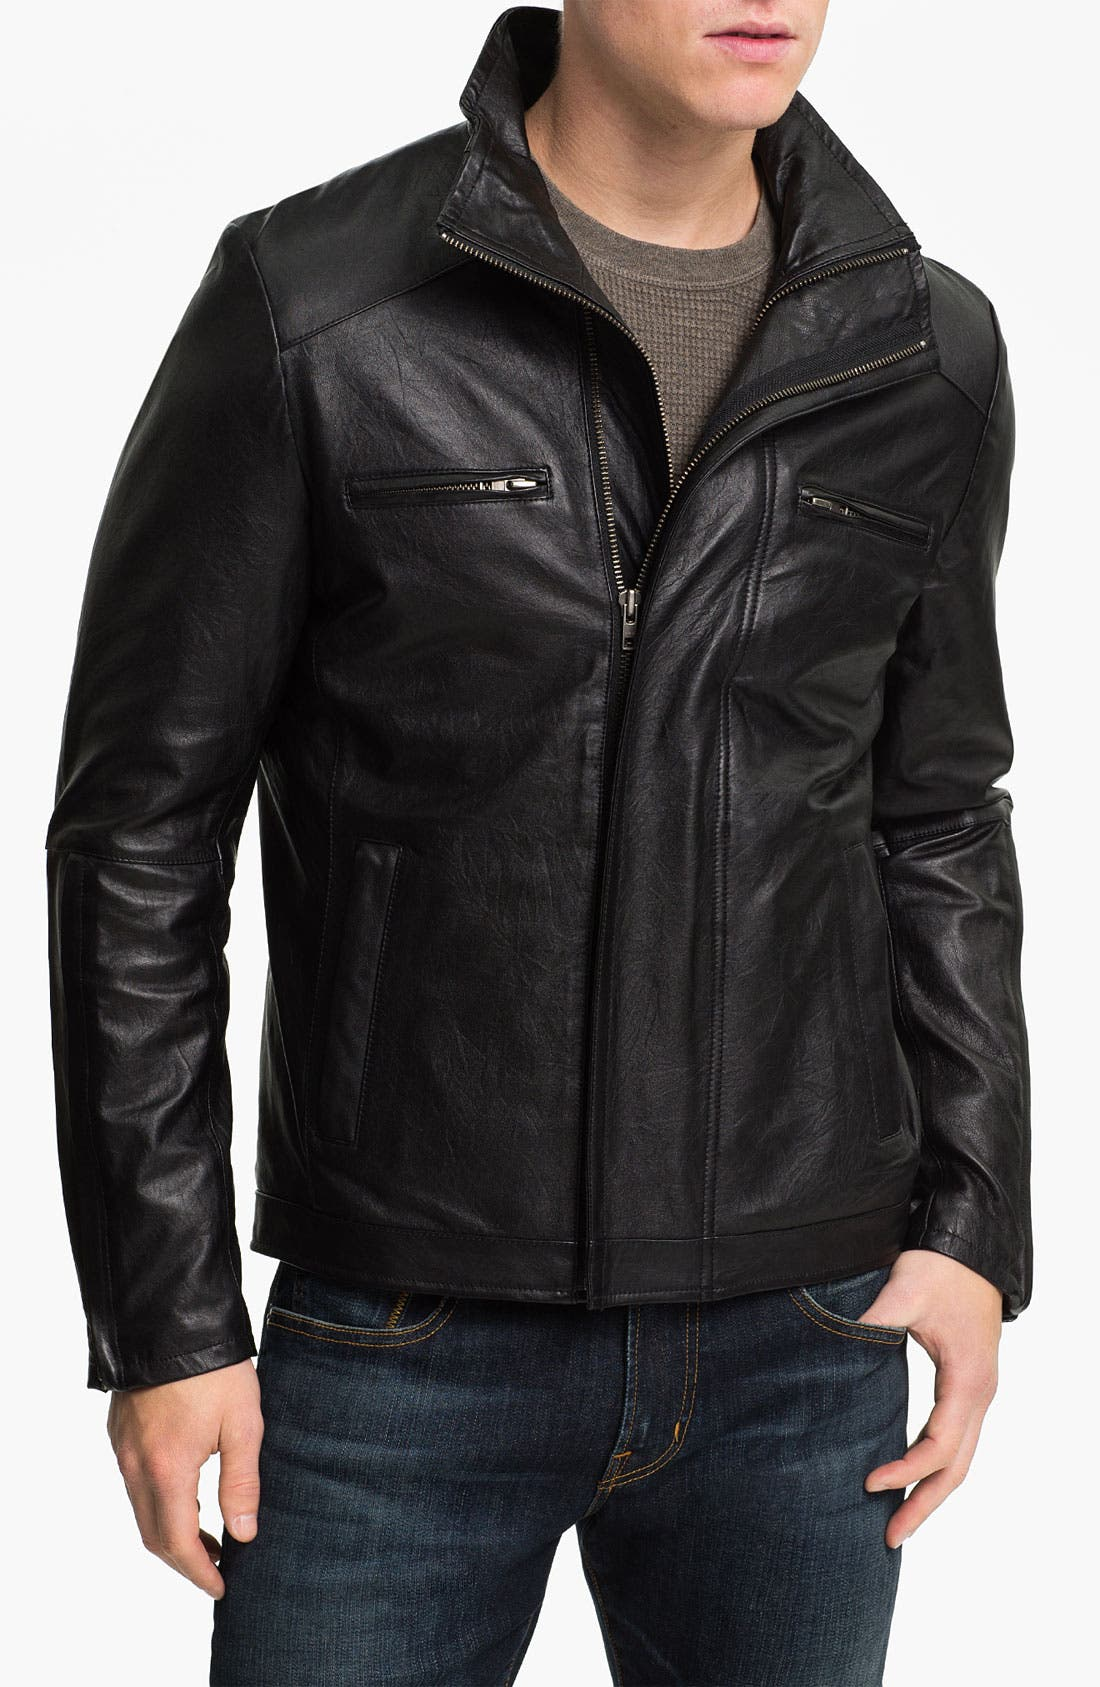 Main Image - Zachary Prell 'Barclay' Leather Jacket